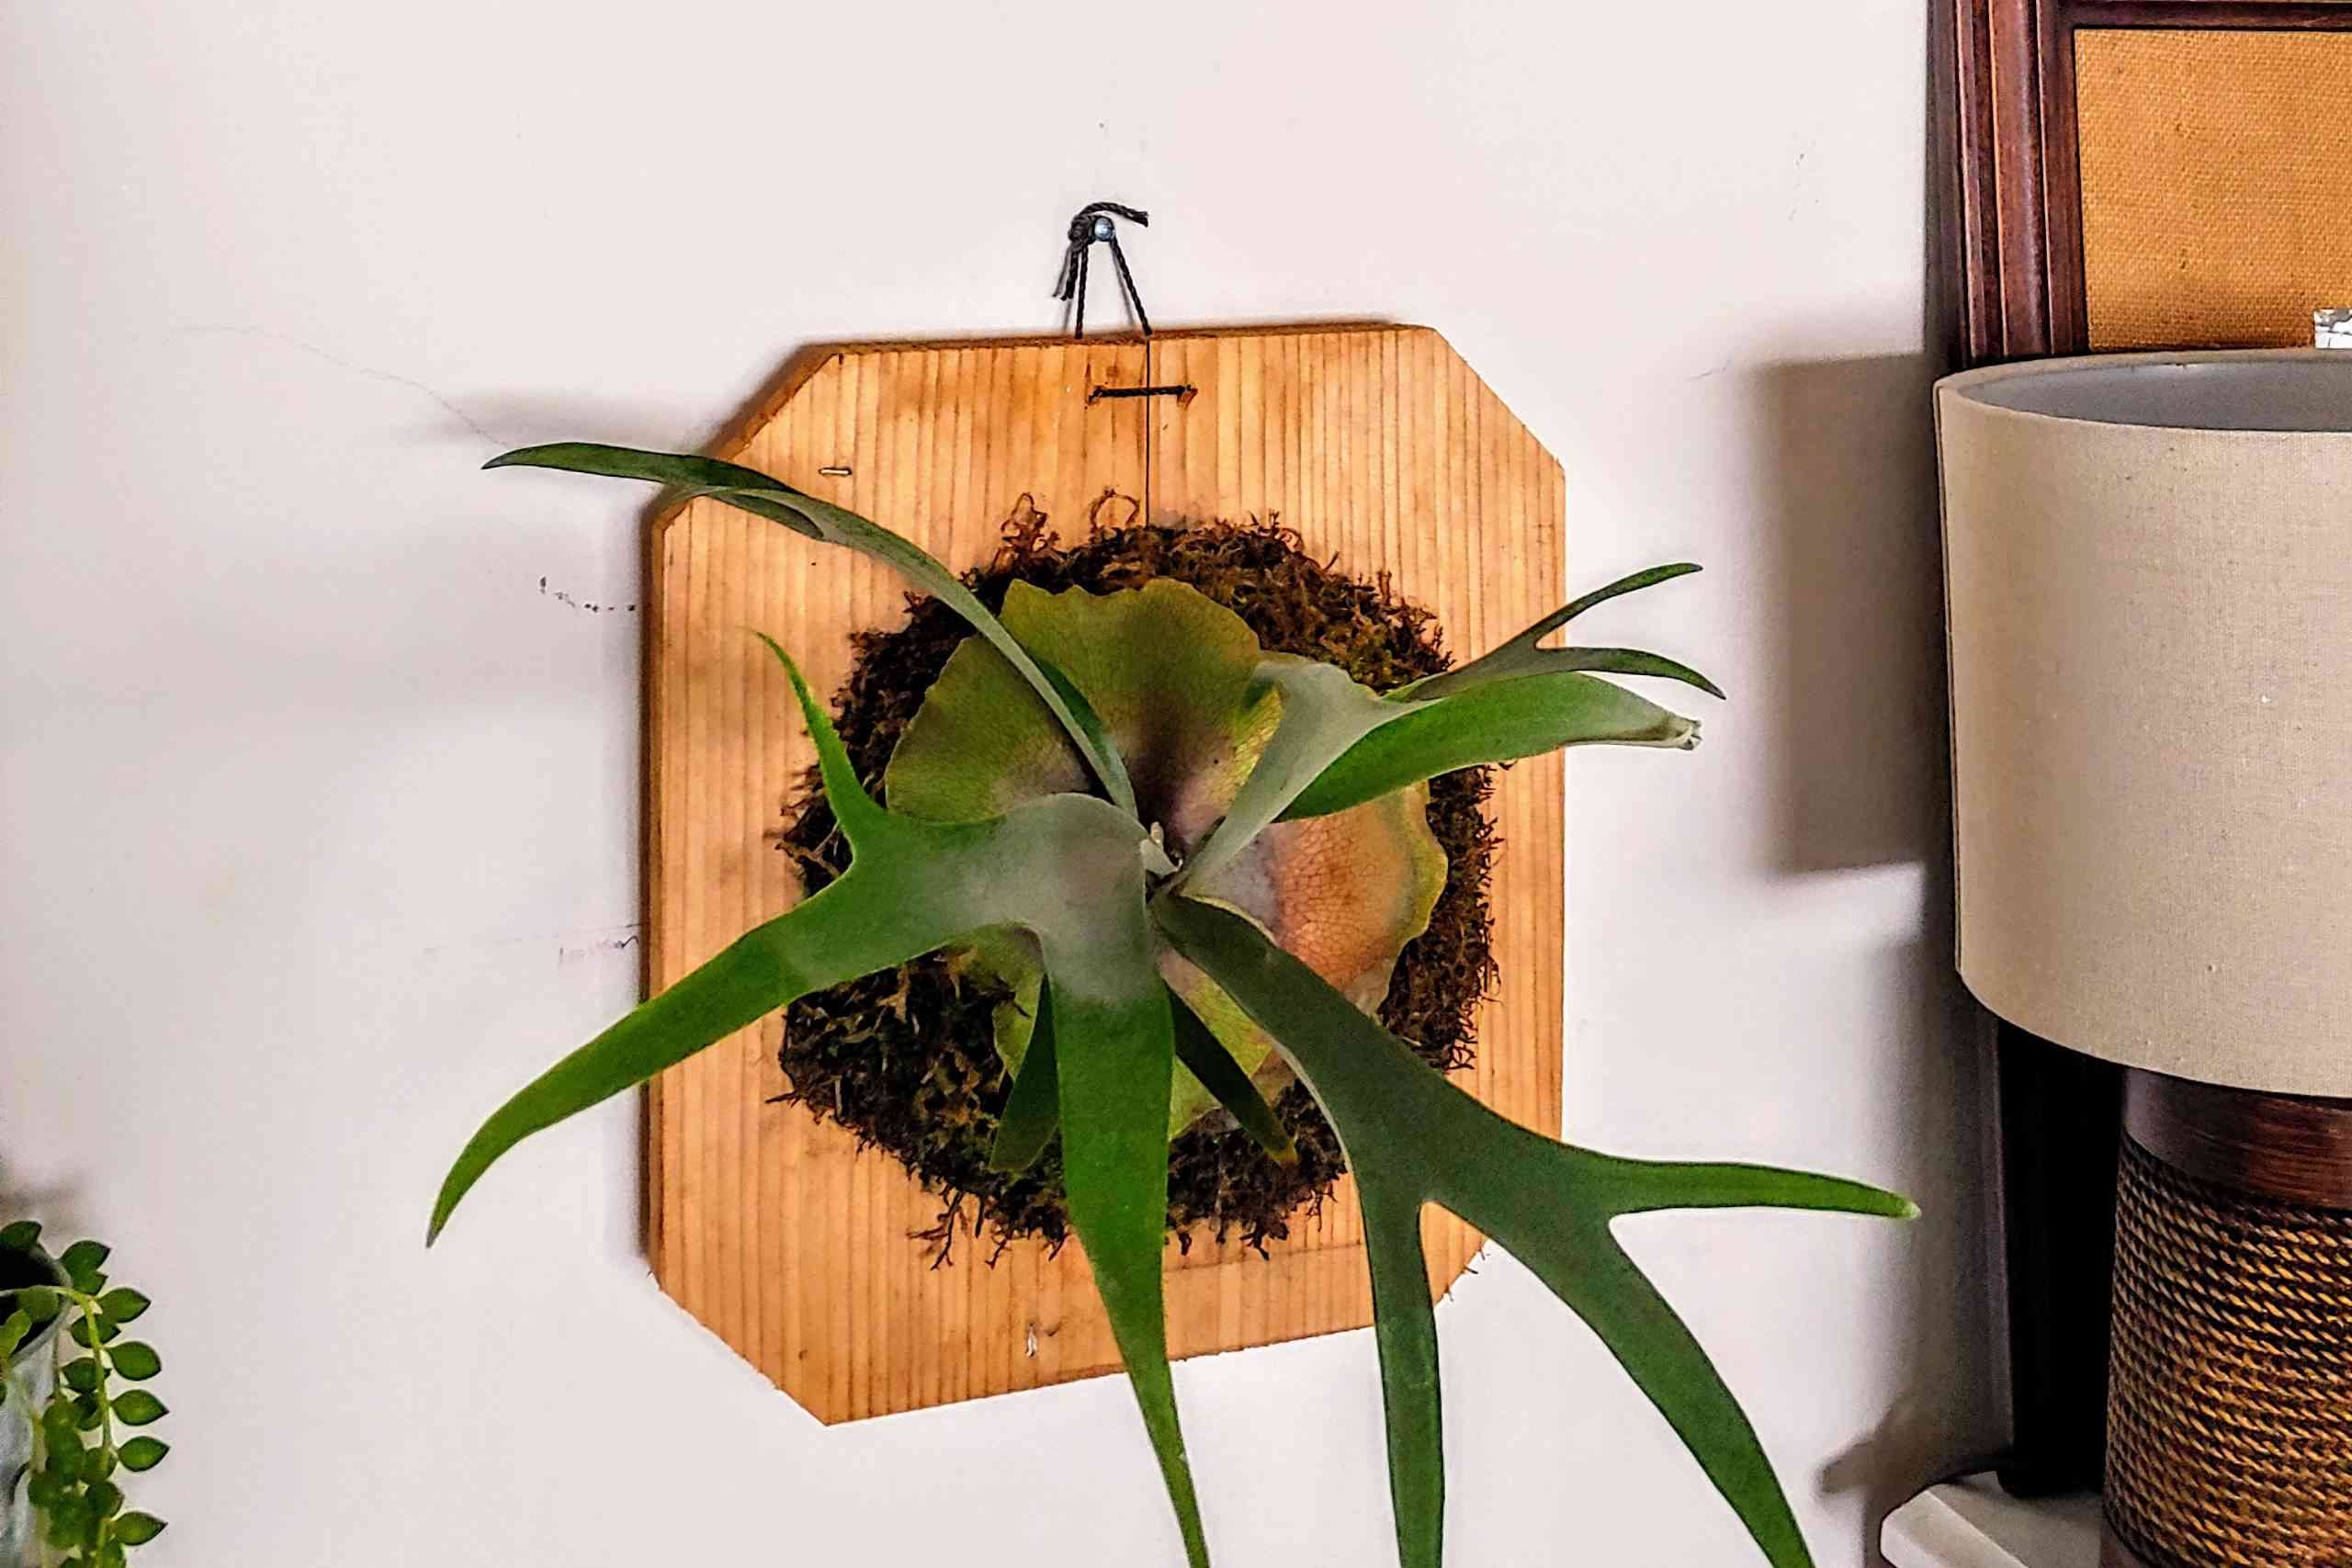 A mounted staghorn fern next to a vintage lamp and picture frame.